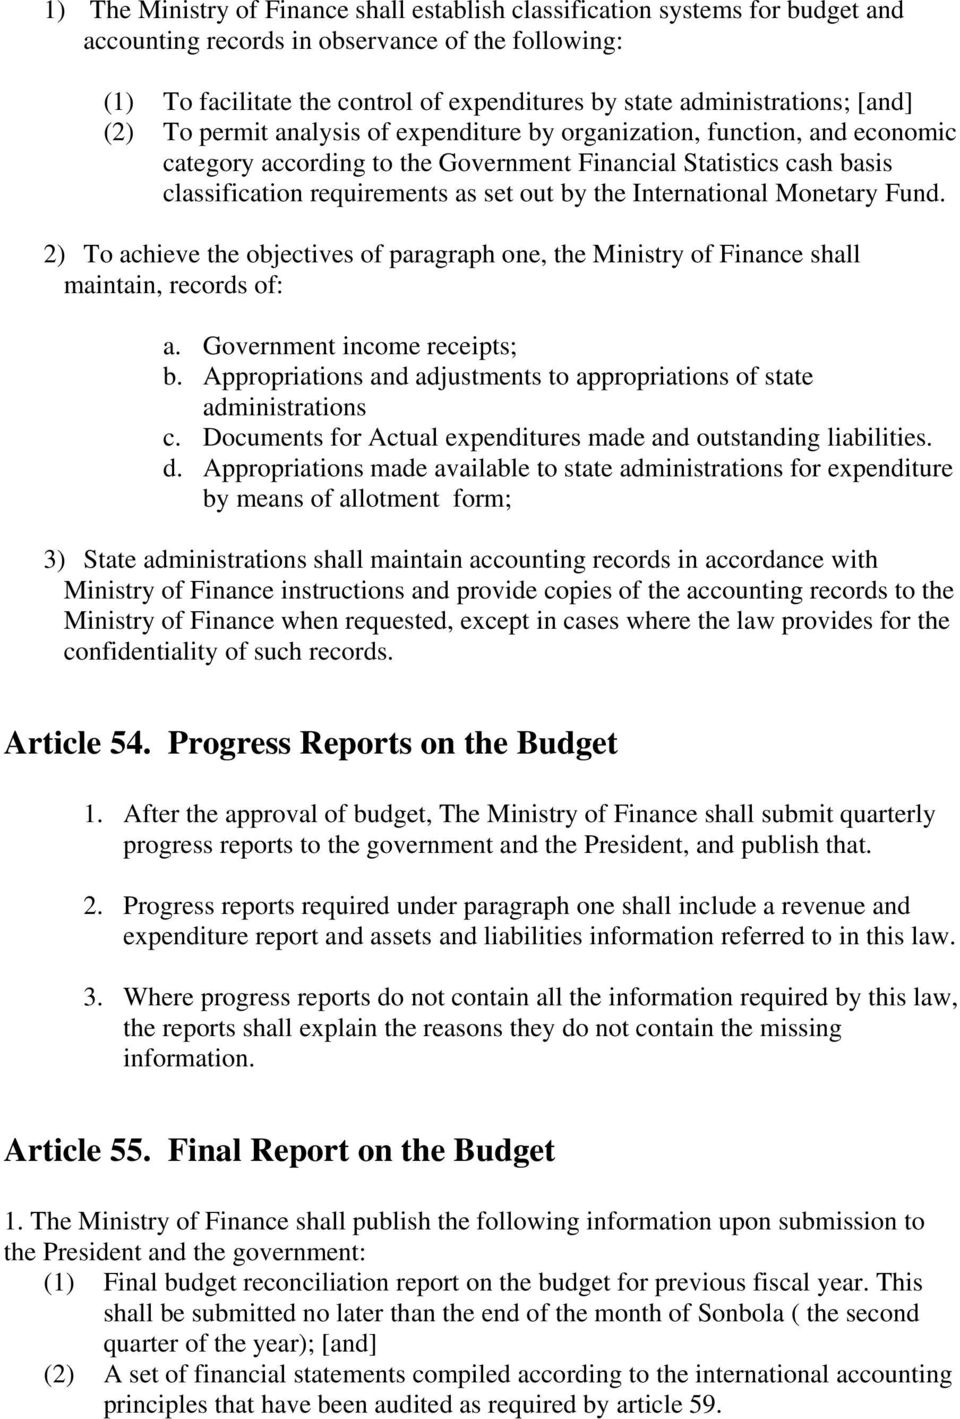 as set out by the International Monetary Fund. 2) To achieve the objectives of paragraph one, the Ministry of Finance shall maintain, records of: a. Government income receipts; b.